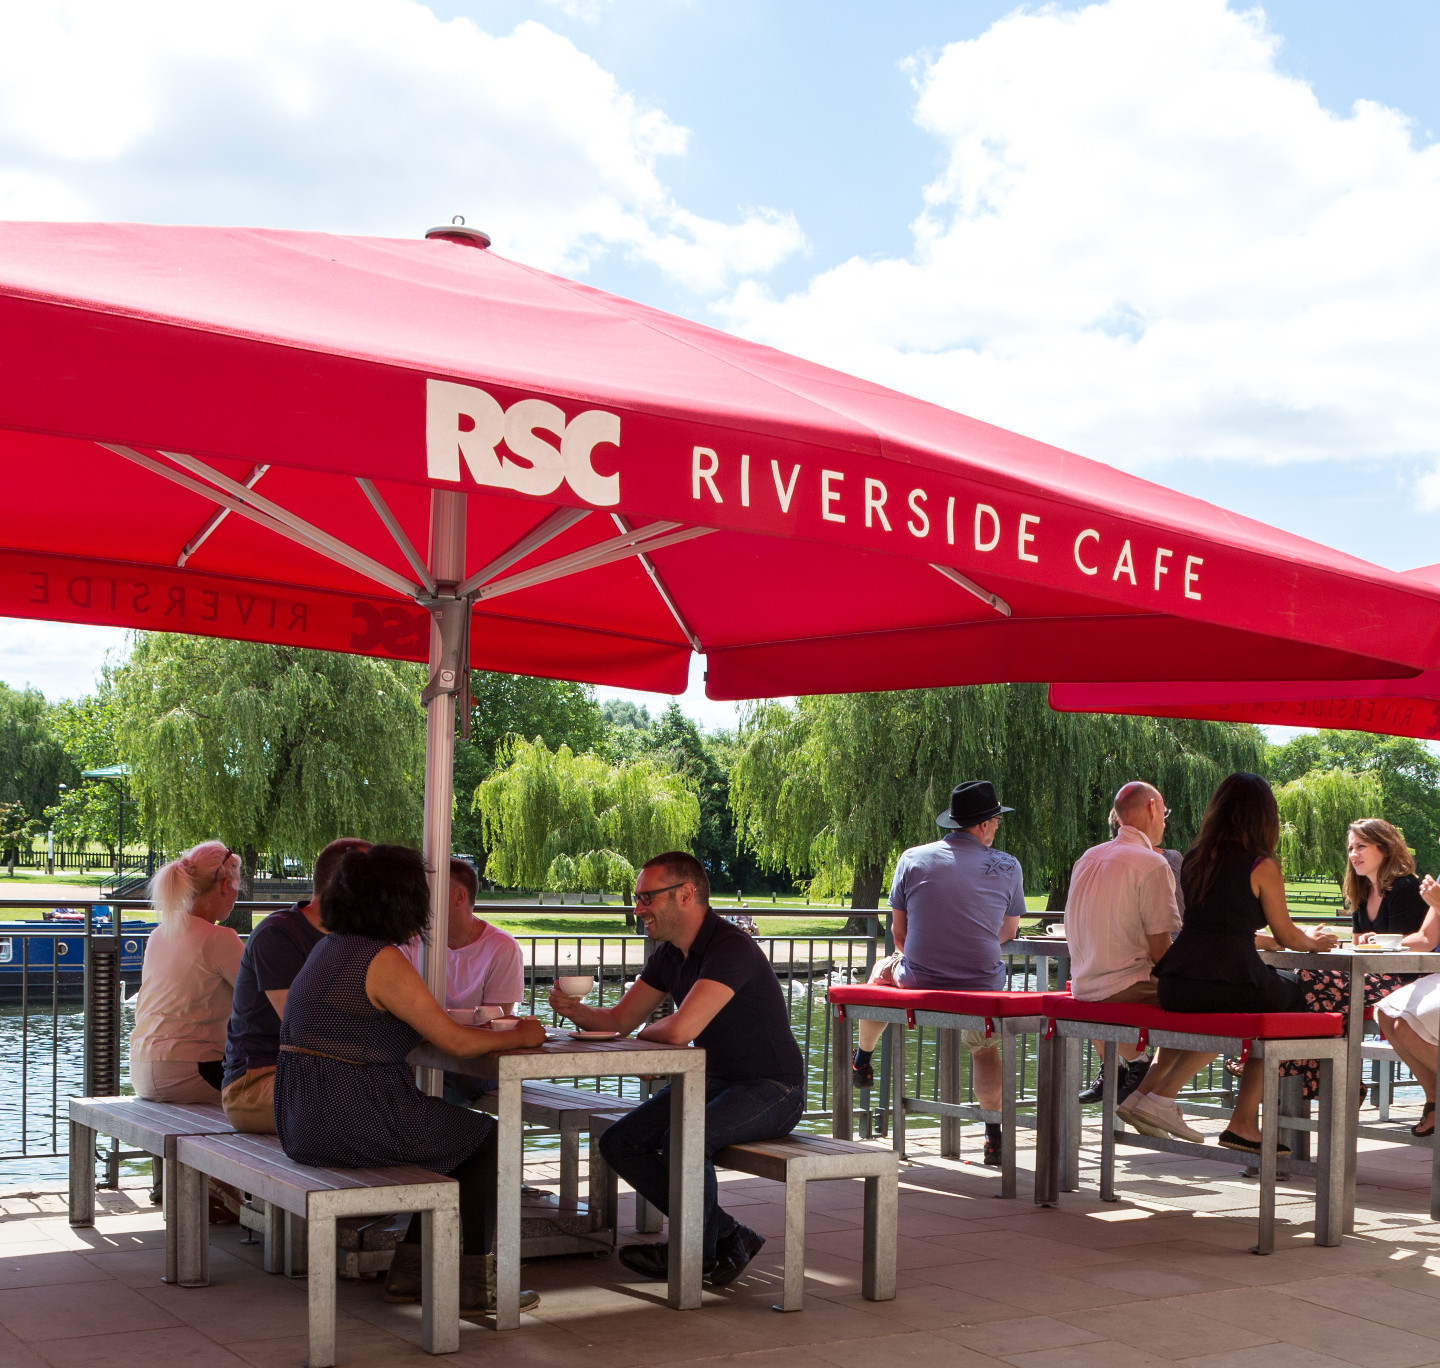 Riverside Cafe food products and exteriors_2014_Photo by Lucy Barriball _c_ RSC_160811_social